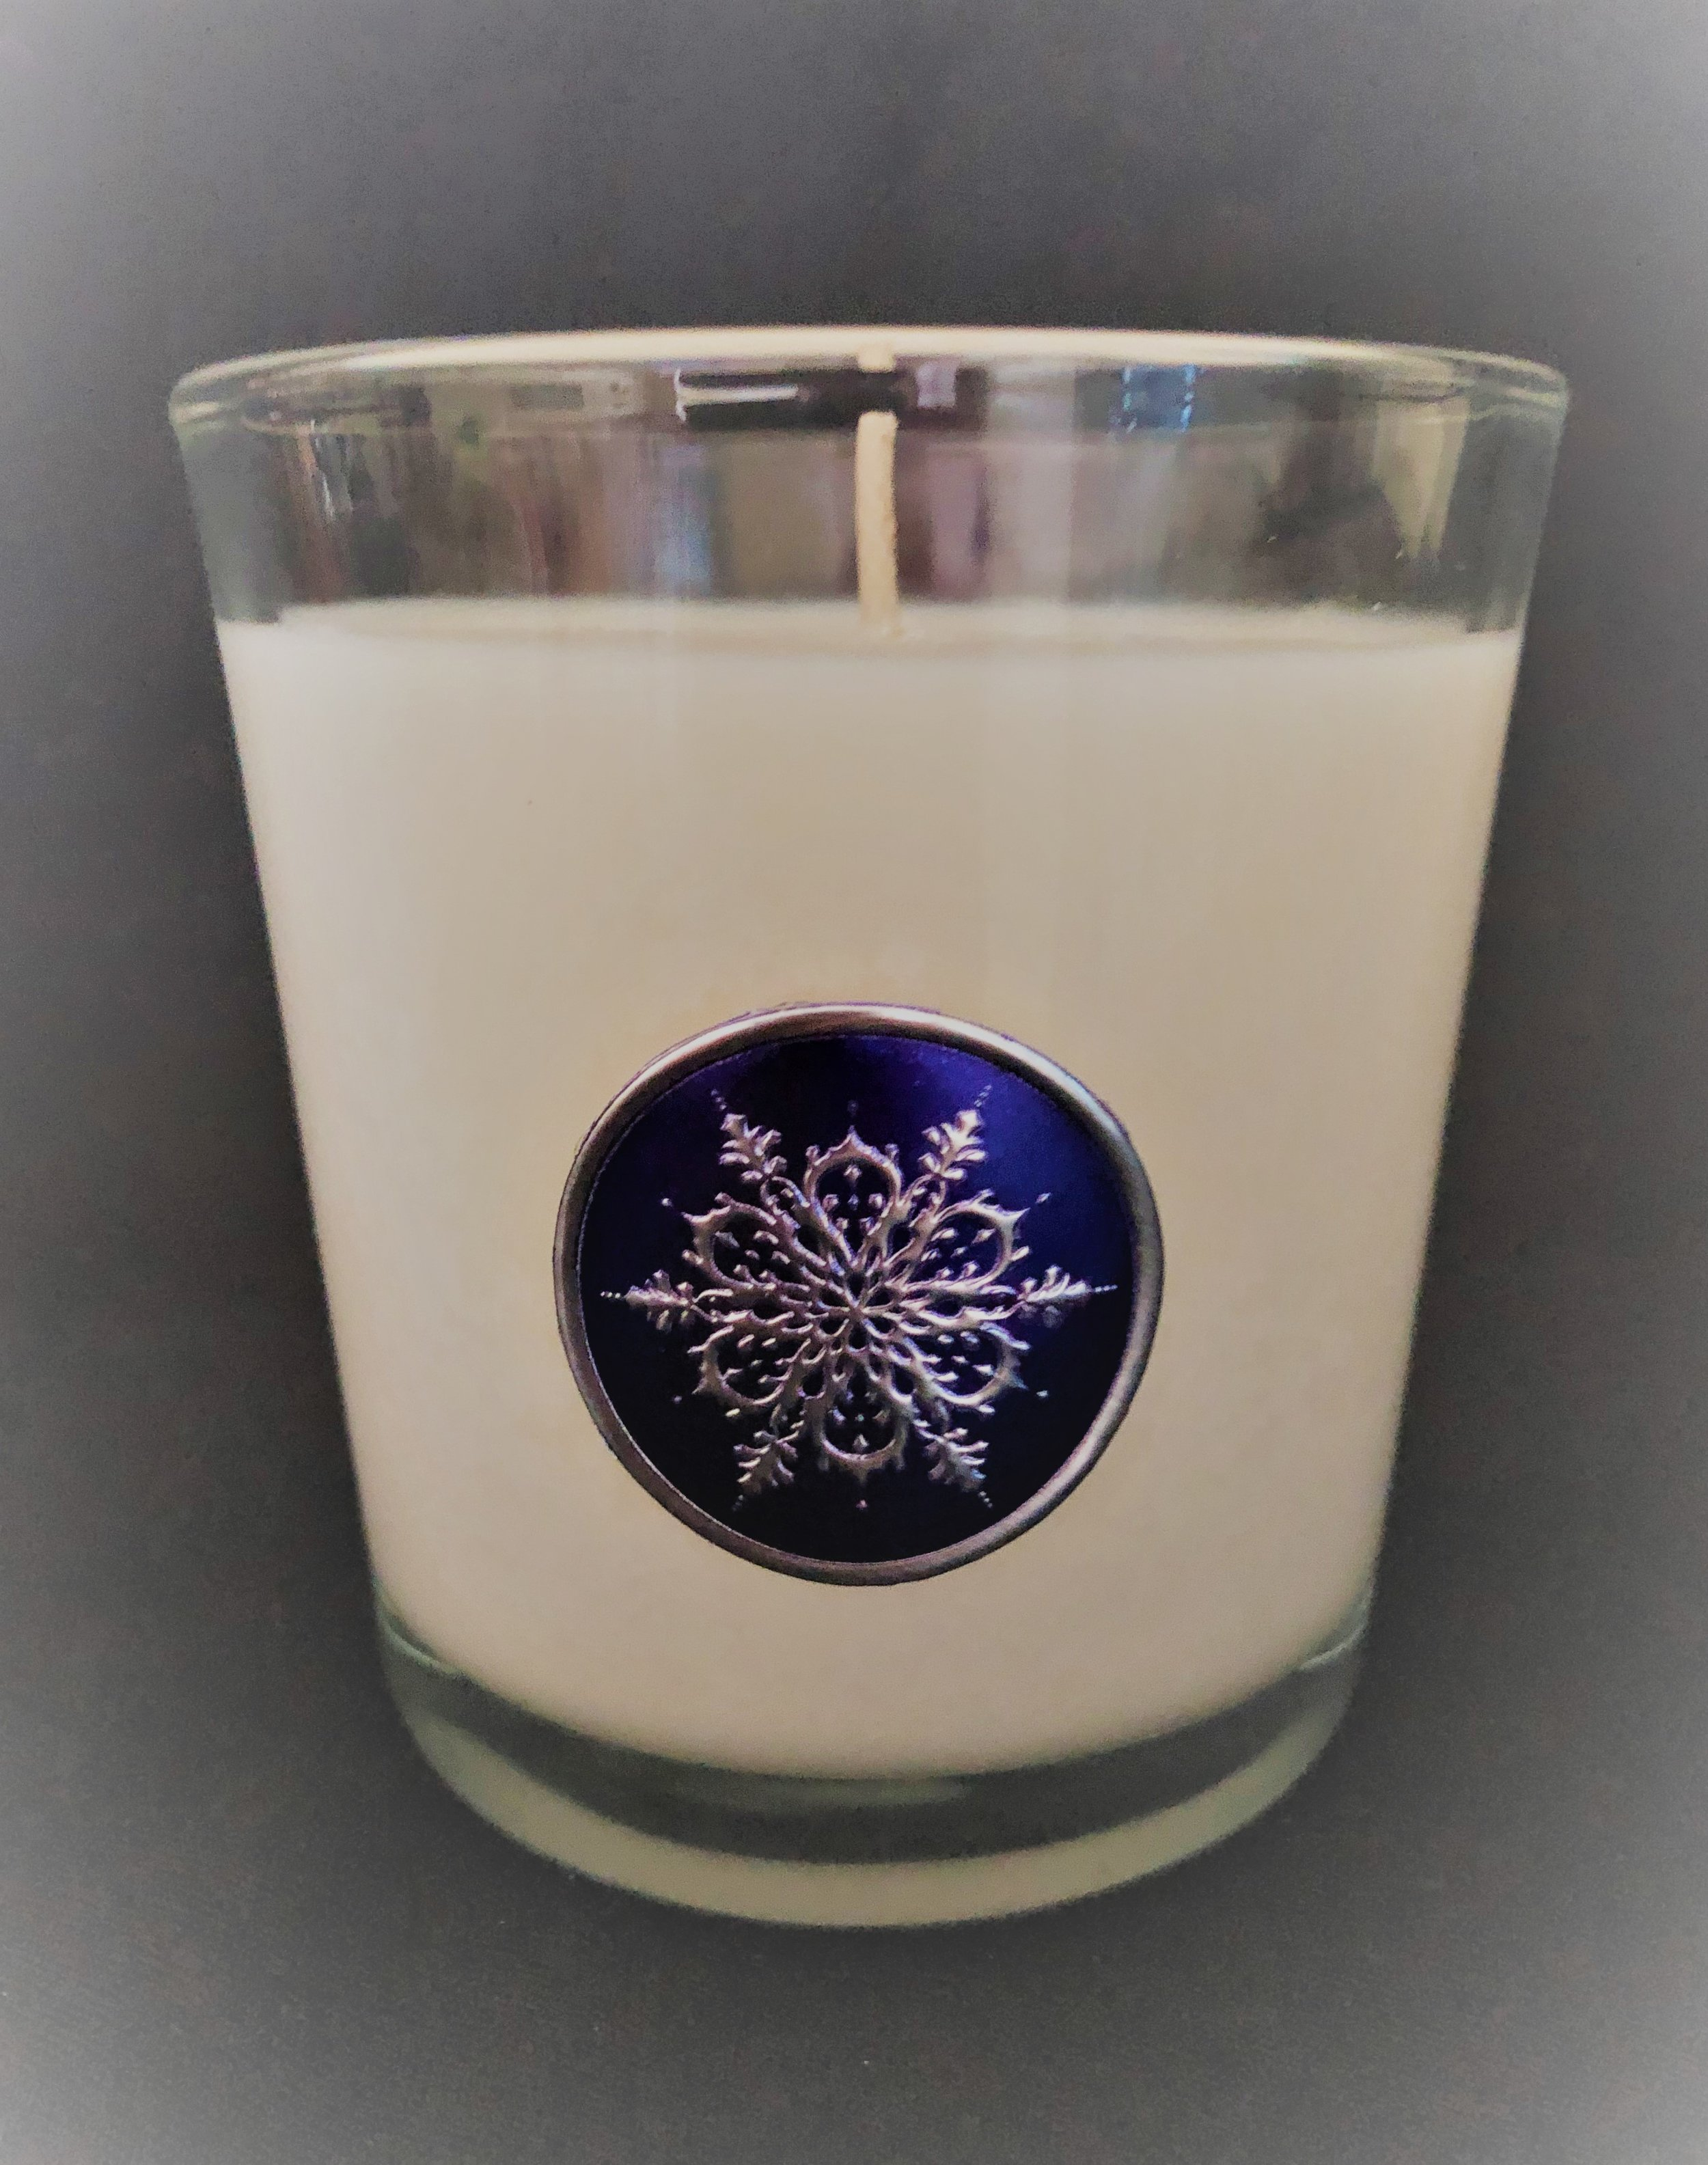 The 9 oz tumbler pictured here is featured in our striking holiday packaging. Tumbler as shown is $15 each. Sold in groups of 6 with same dye and fragrance.